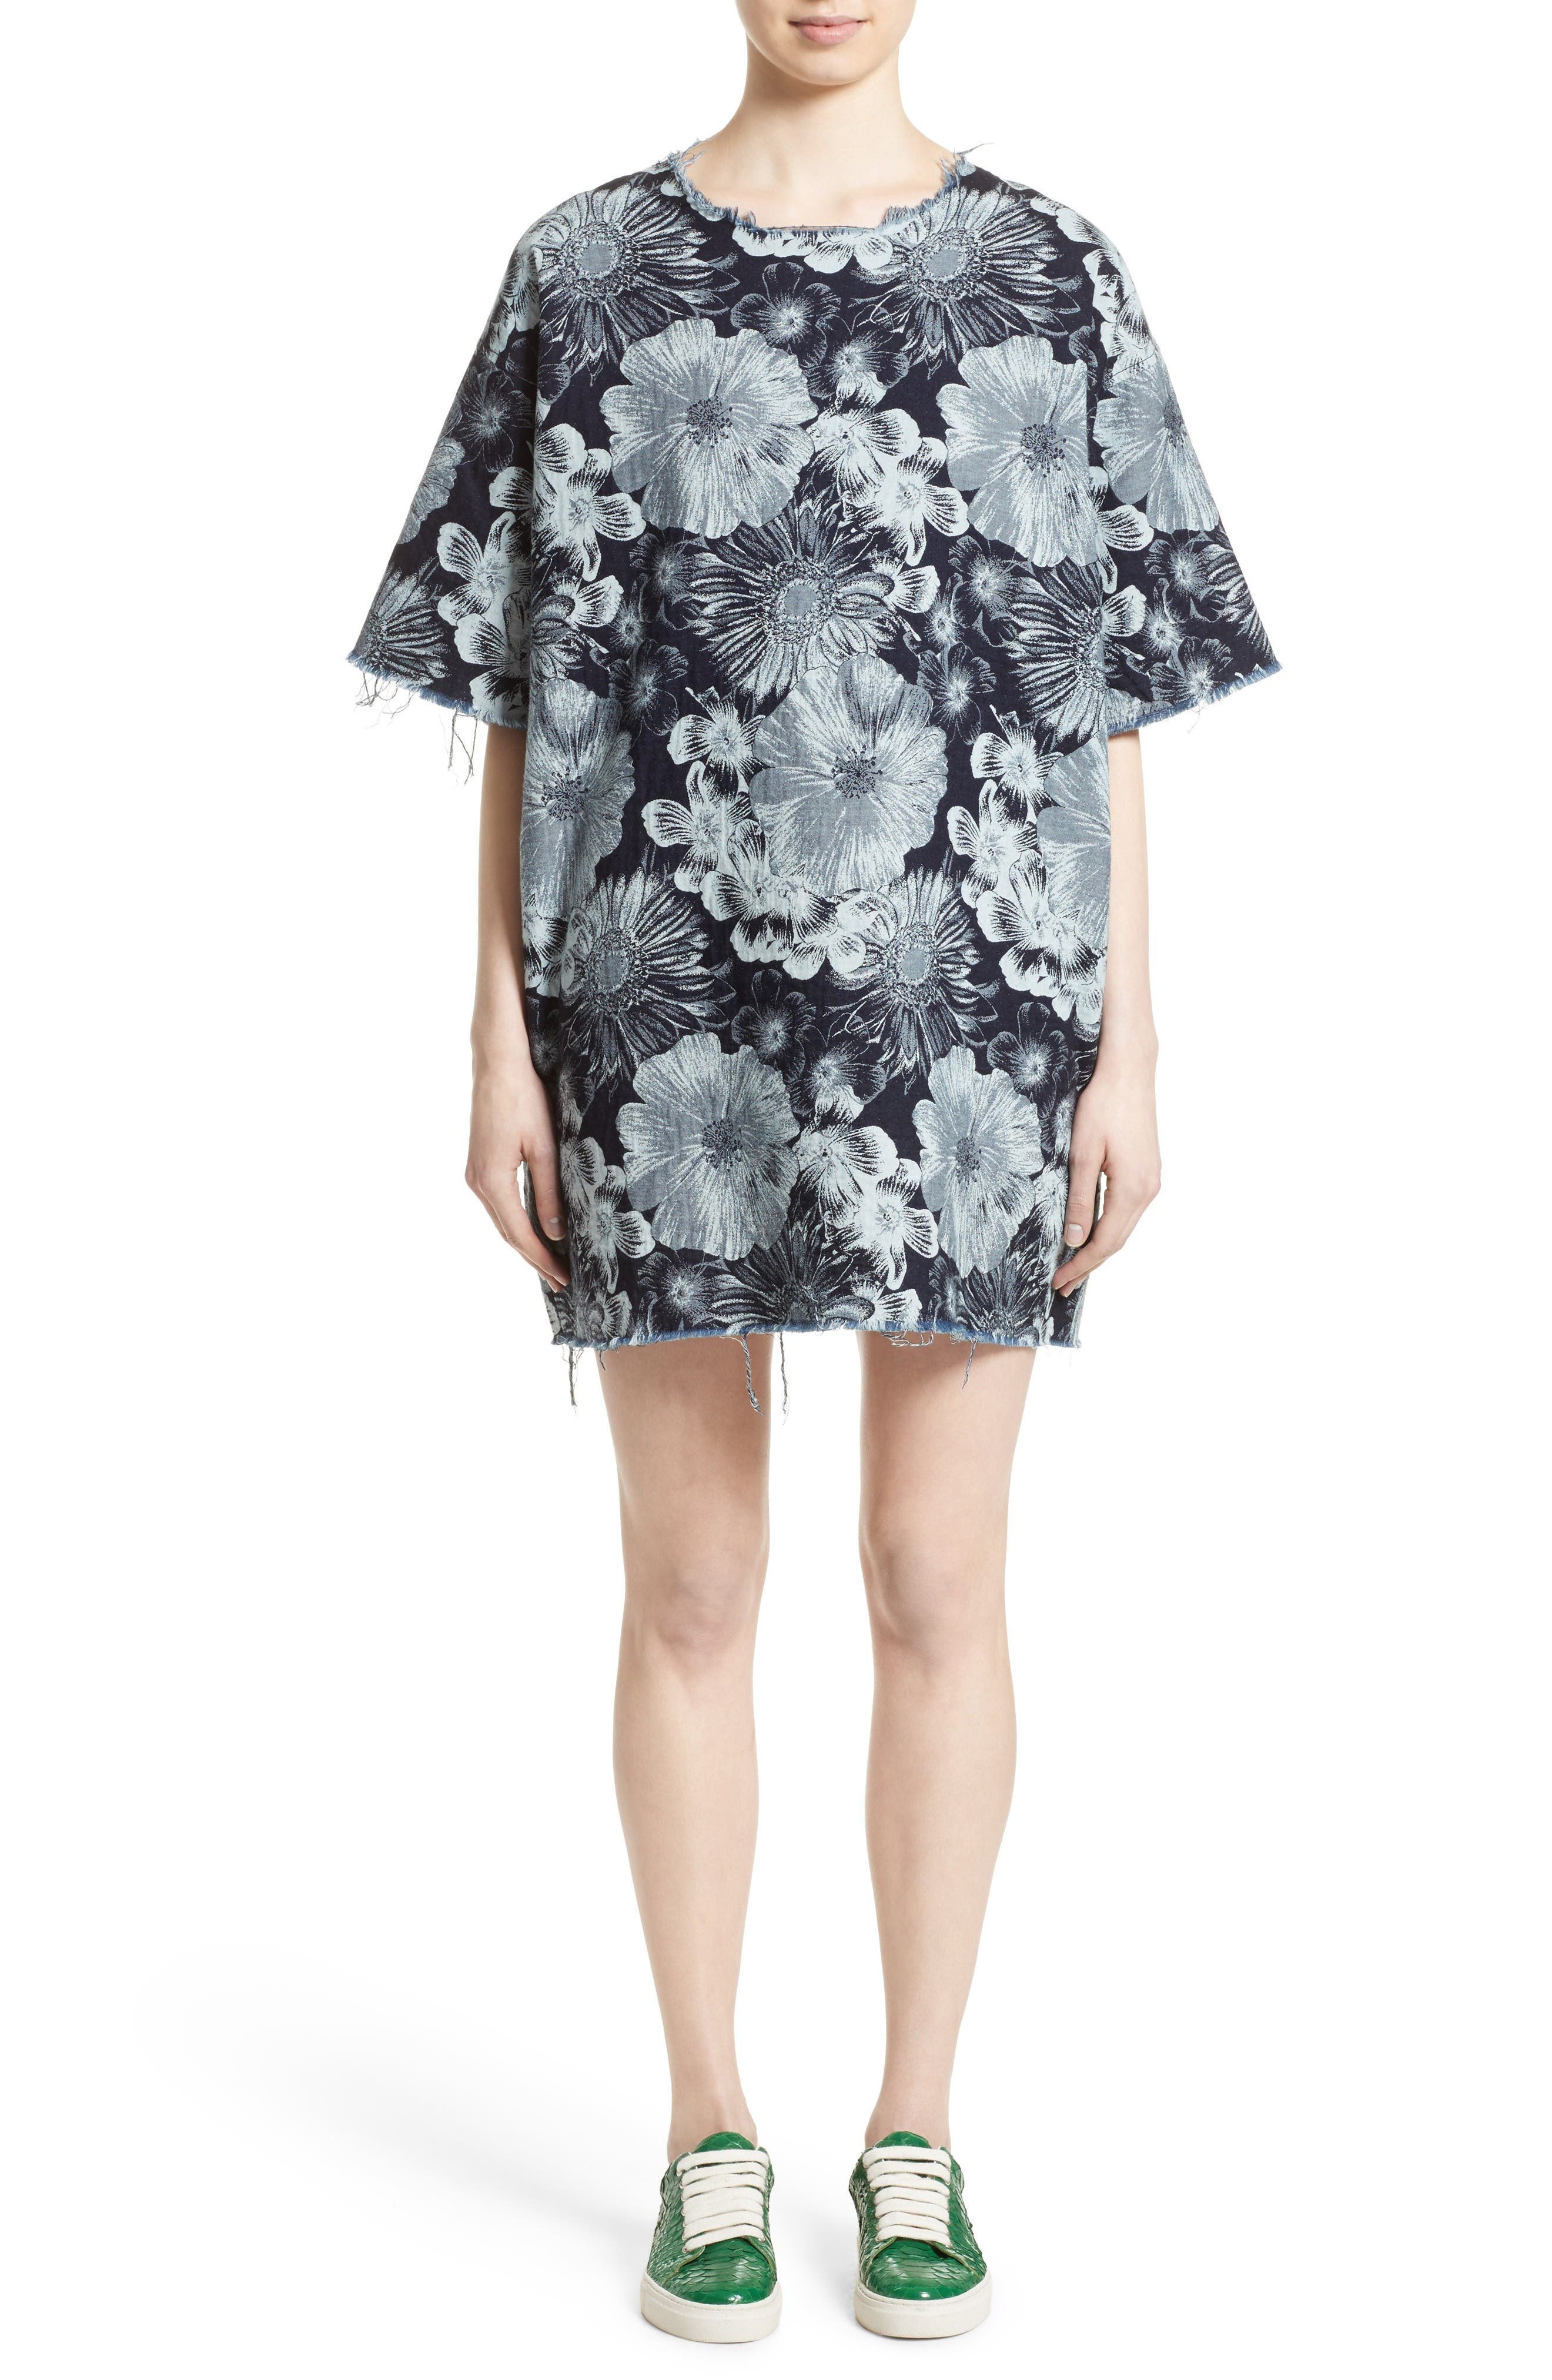 Marques'Almeida Oversized Floral Print T-Shirt Dress (Nordstrom Exclusive)